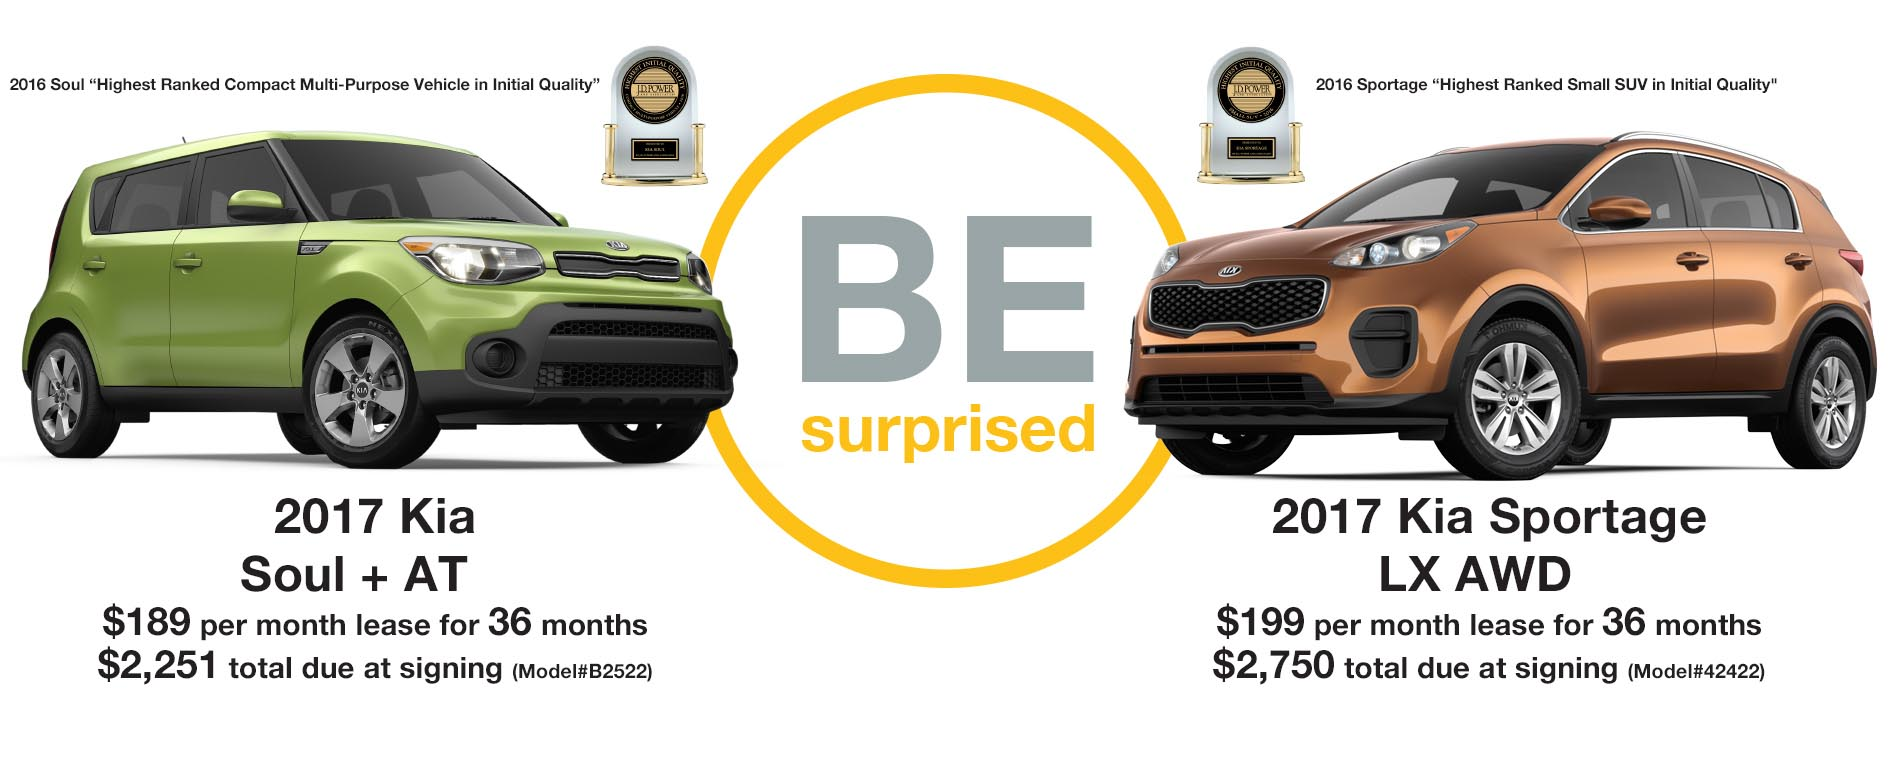 BE SURPRISED. Lease a 2017 Soul for just $189 per month with $2,251 due at signing or lease a 2017 Sportage for $199 per month with $2,750 due at signing.